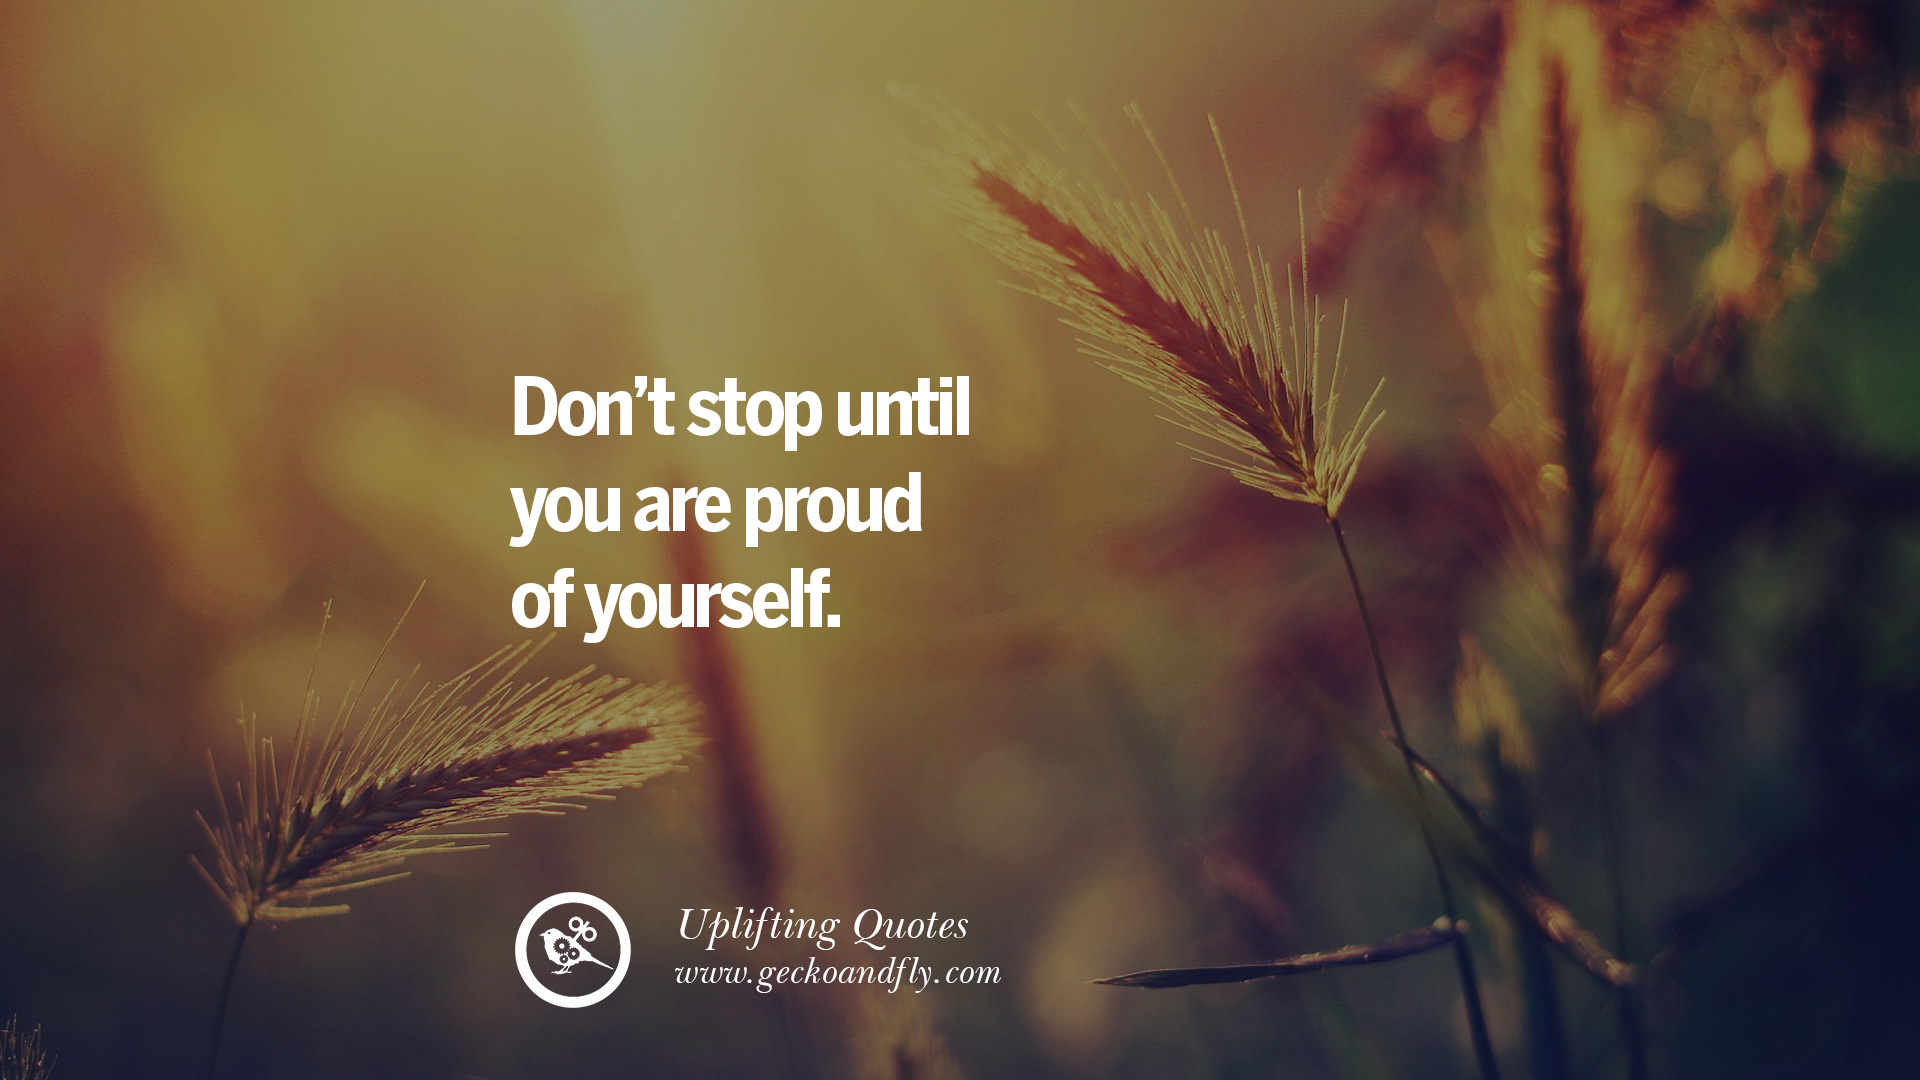 Inspirational Quotes: 30 Uplifting Inspirational Quotes When You Are About To